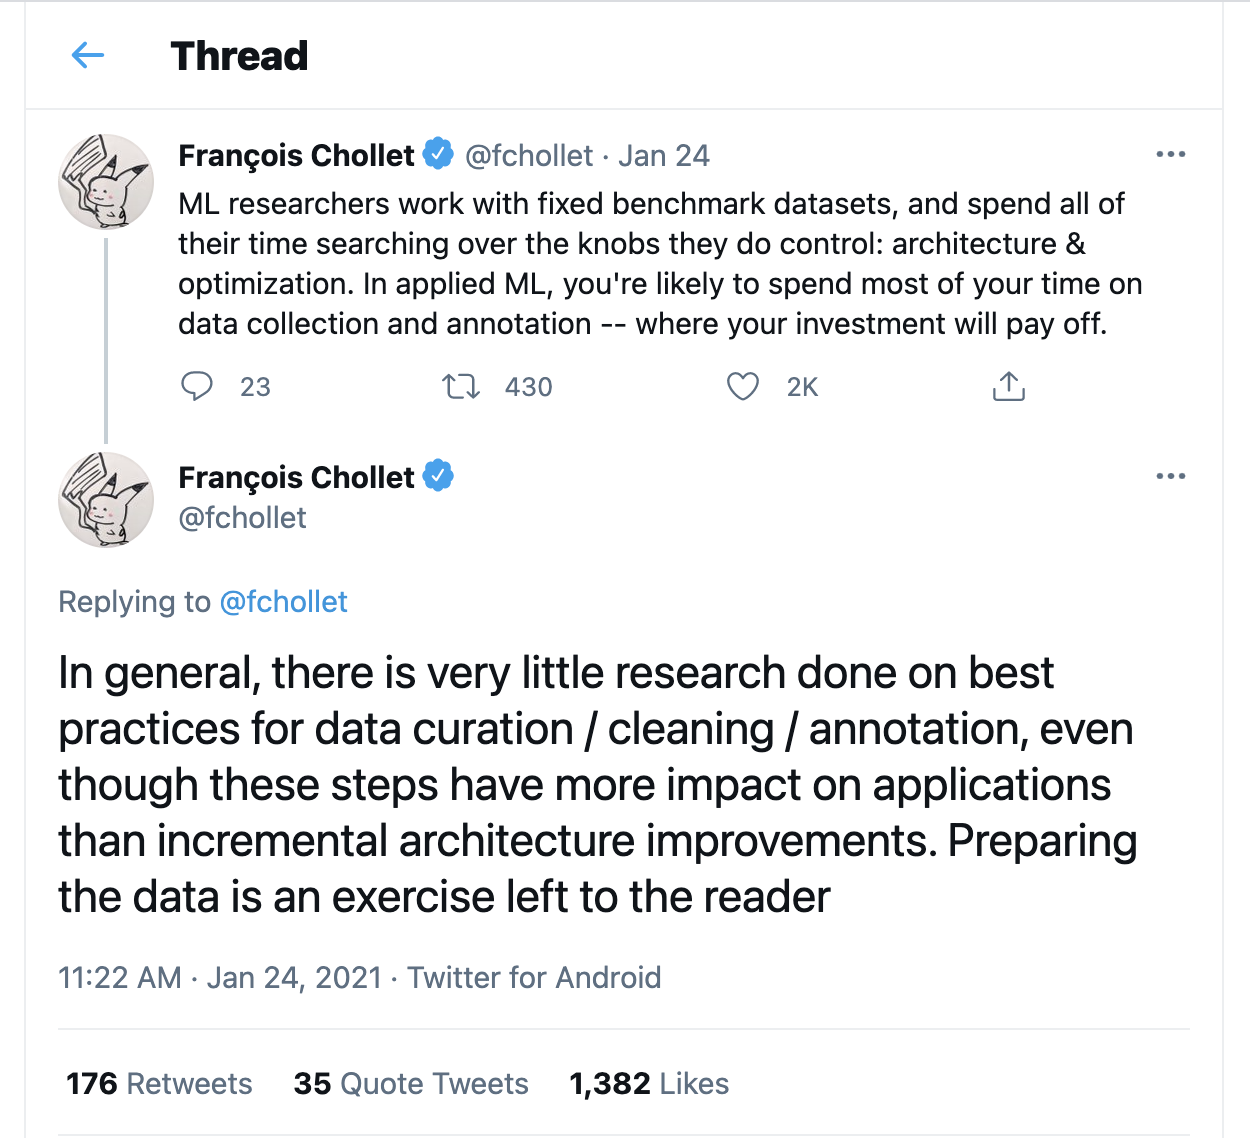 The above sentiment is conveyed by Francois Chollet - the creator of Keras (Source: https://twitter.com/fchollet/status/1353422914071142400)